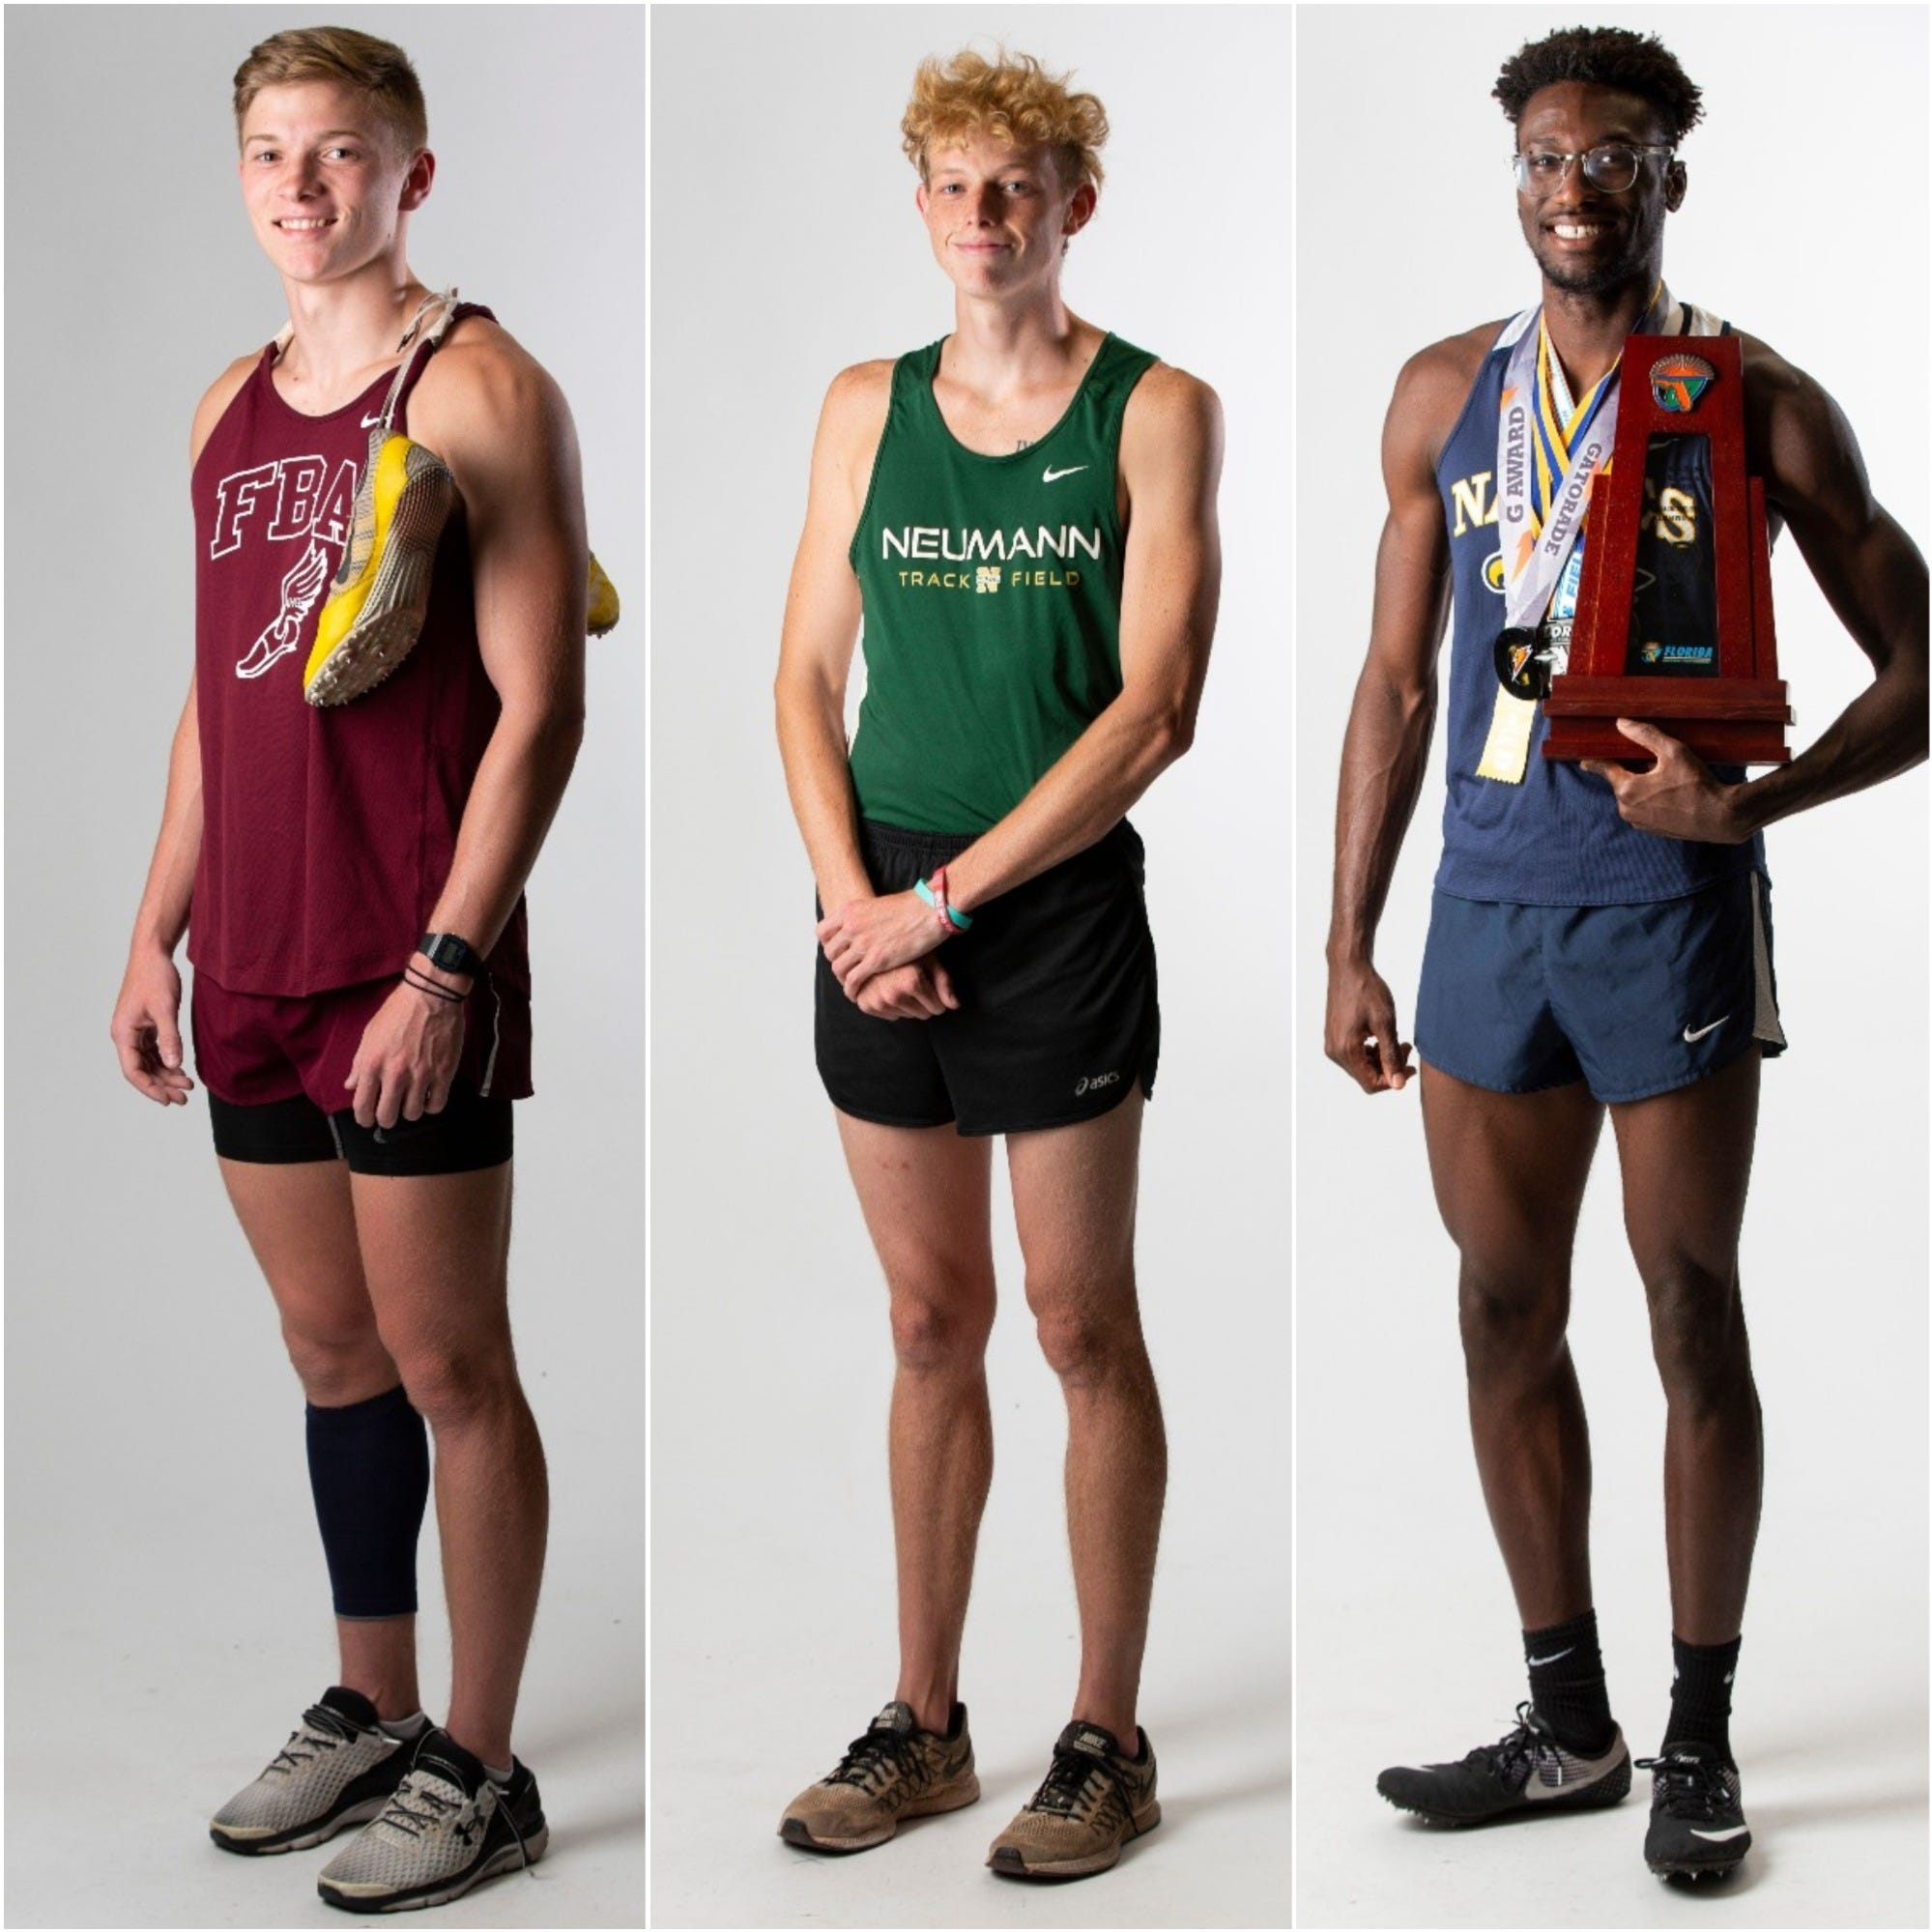 Naples Daily News 2019 All-Area Boys Track team